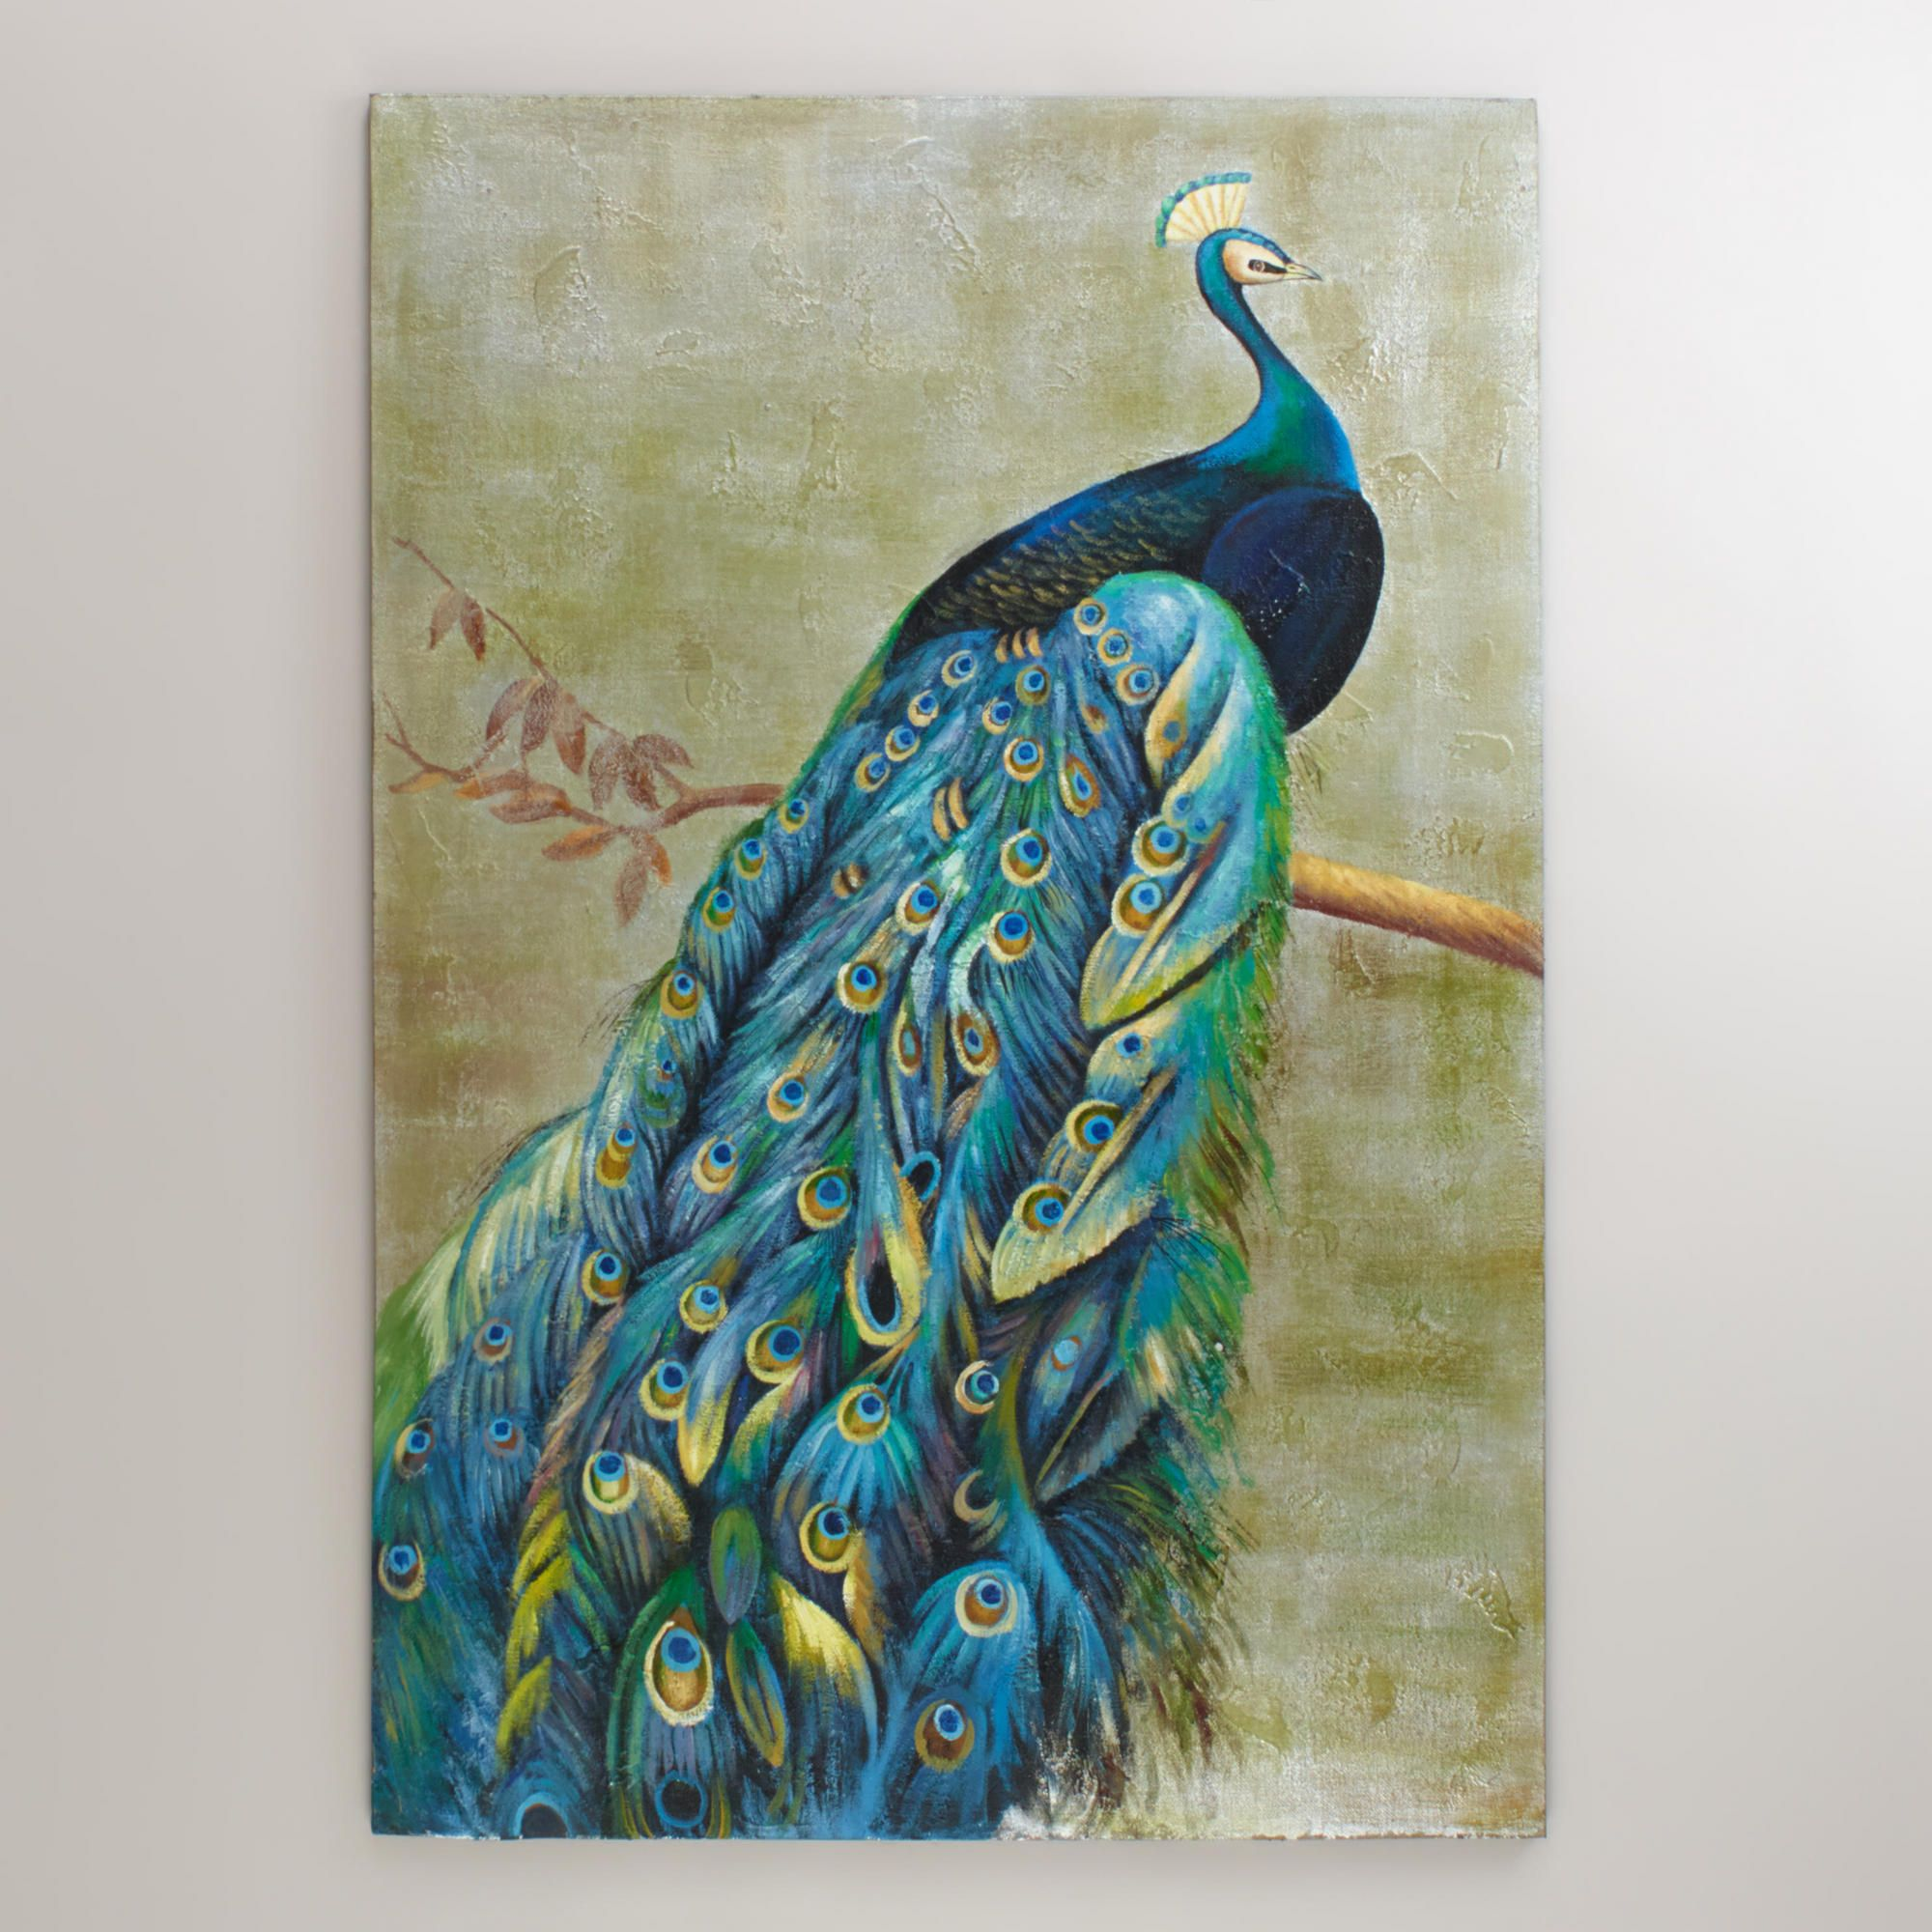 Graceful peacock painting world market i need this badly for my